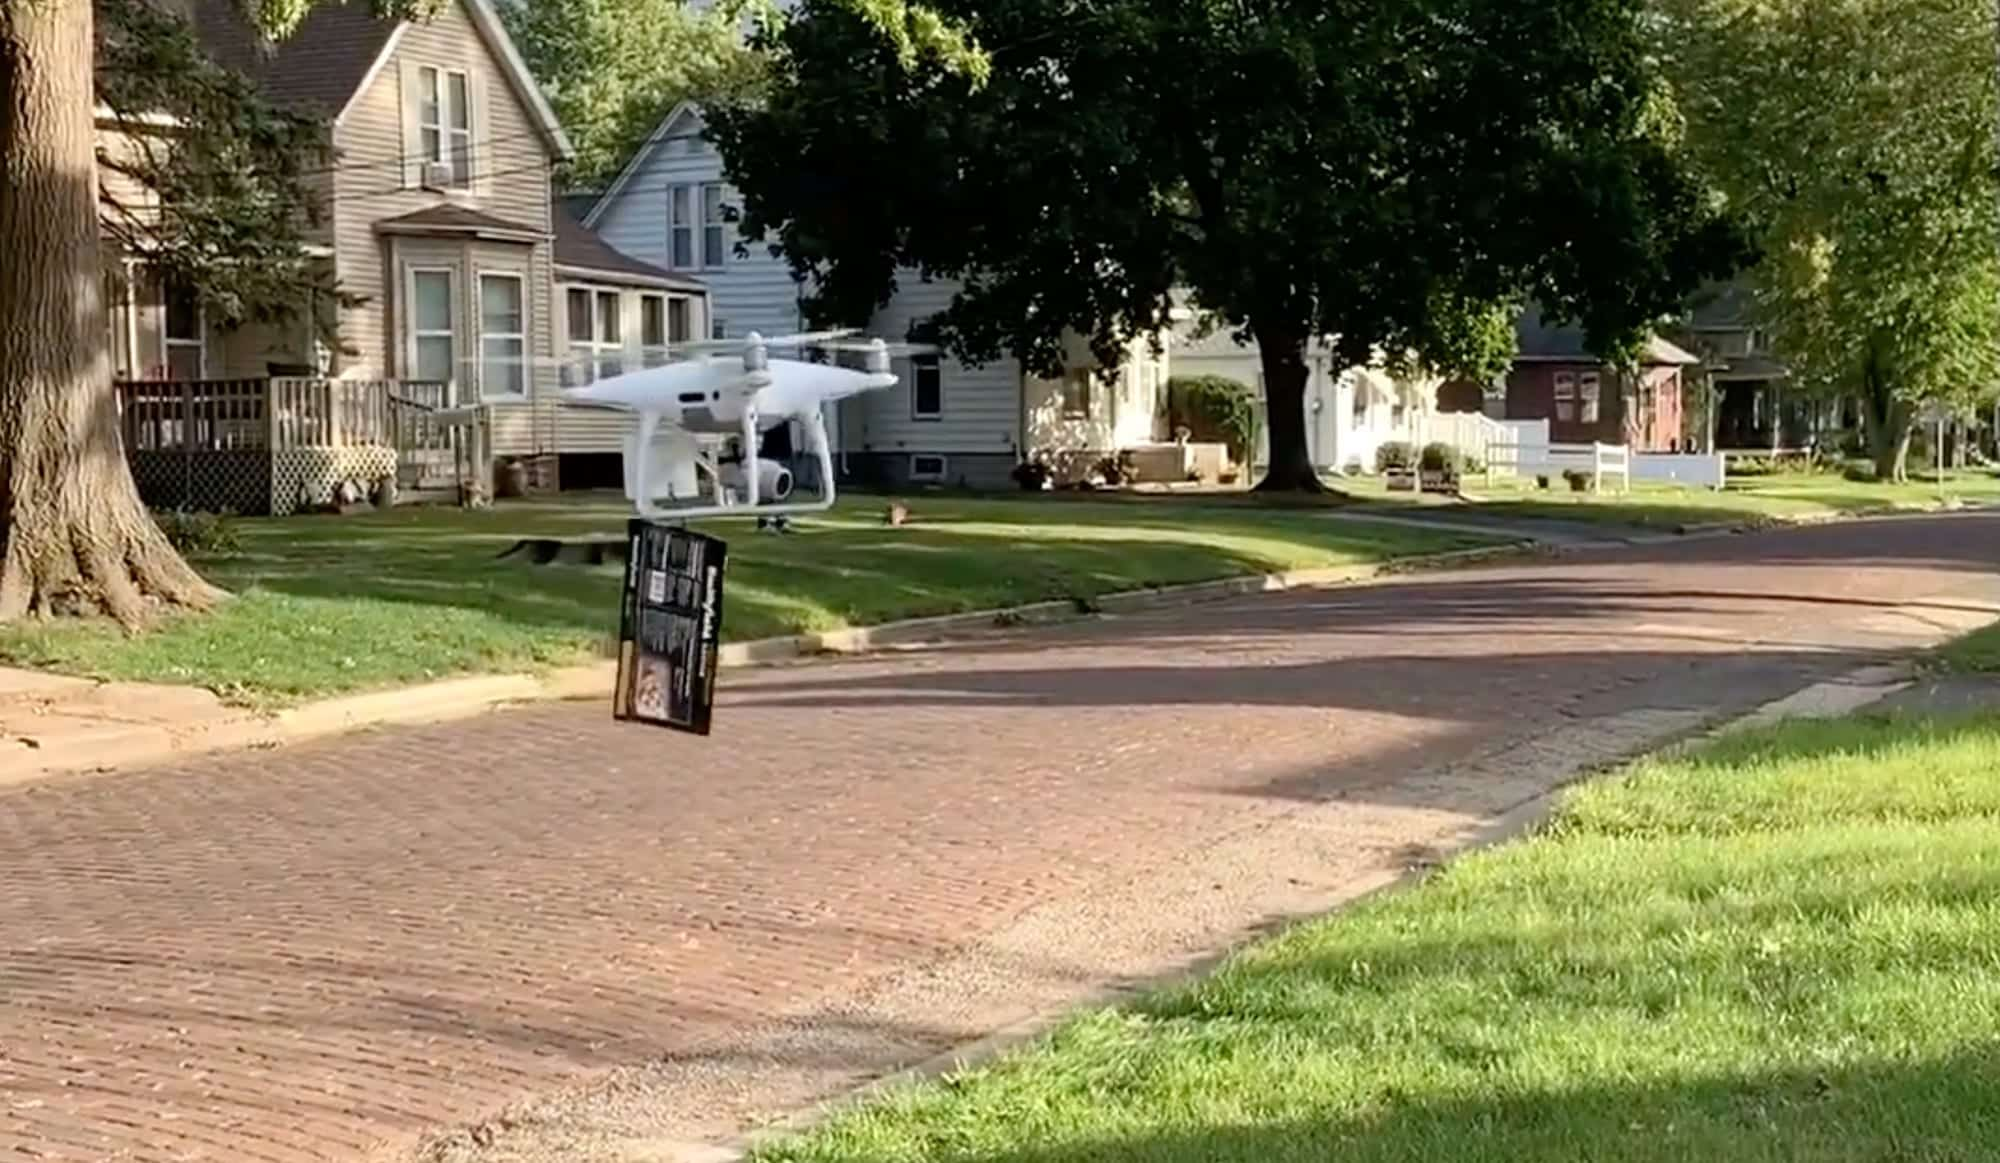 Bacon delivered by drone to family in Galesburg, Illinois